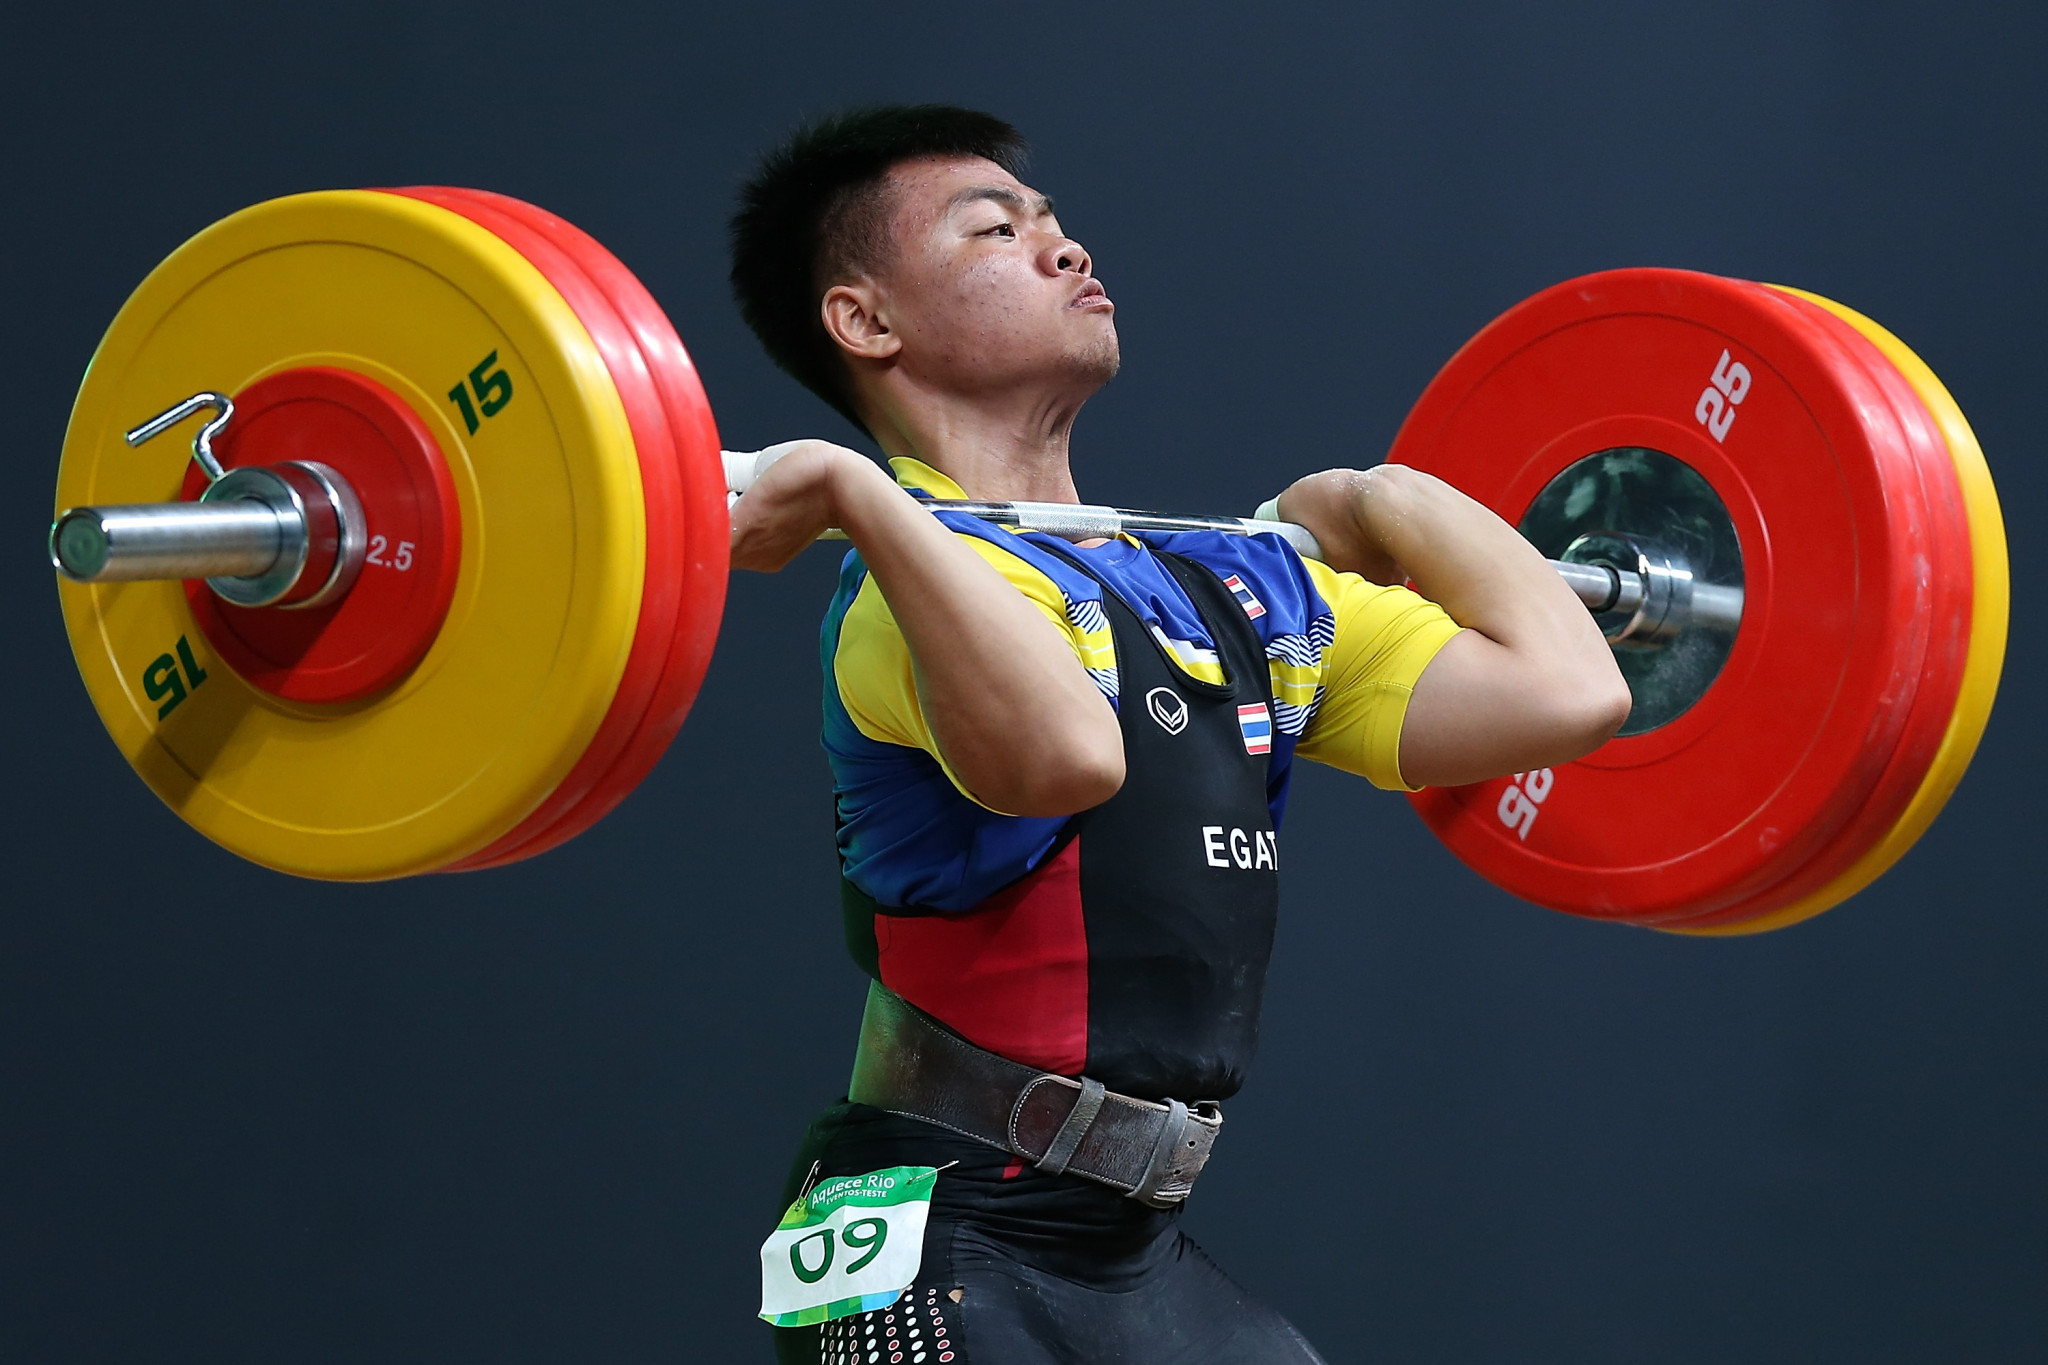 Thailand's Witsanu Chantri has tested positive for anabolic steroids ©Getty Images